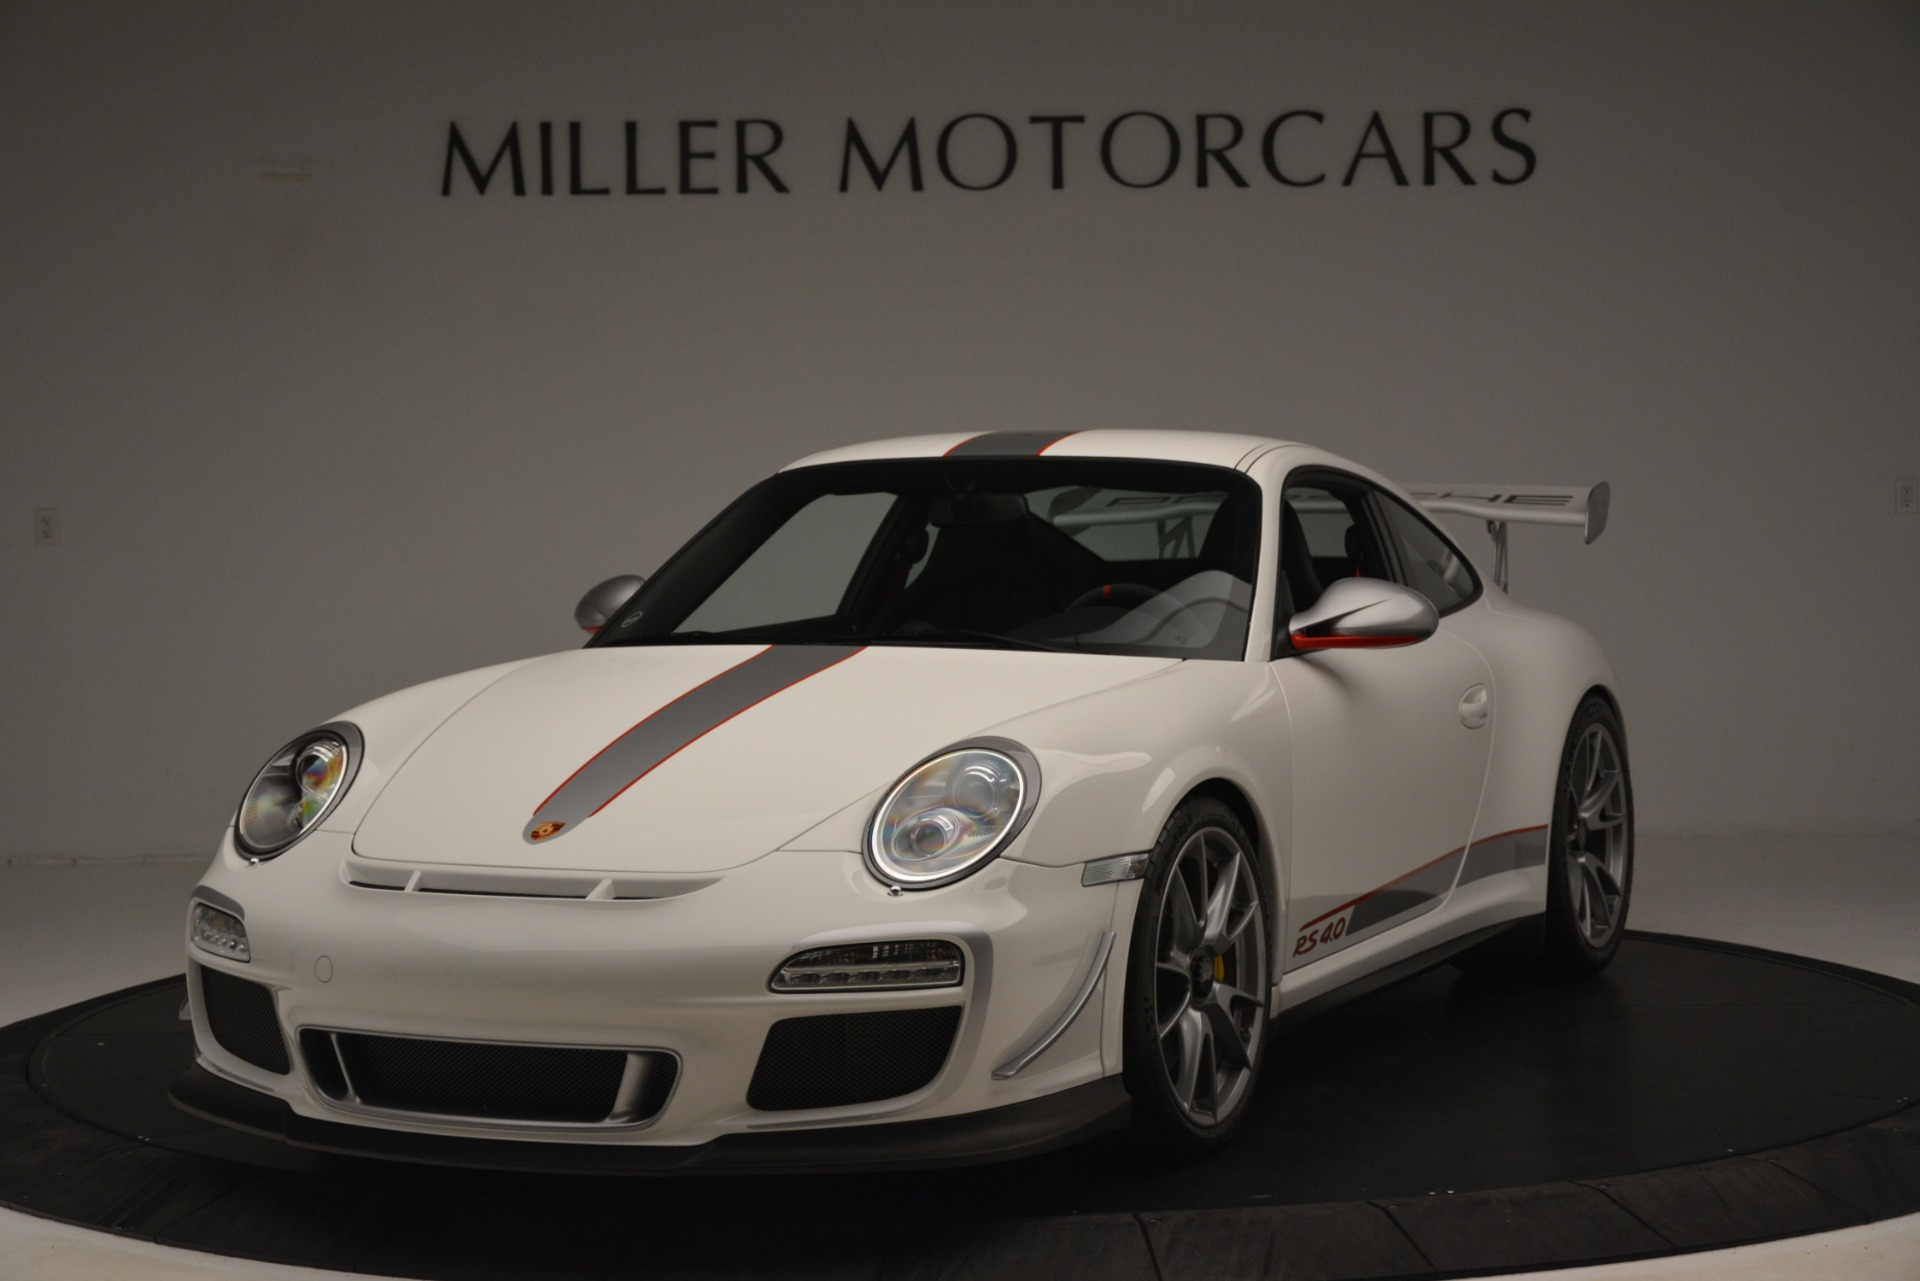 Used 2011 Porsche 911 GT3 RS 4.0 for sale Sold at Bugatti of Greenwich in Greenwich CT 06830 1